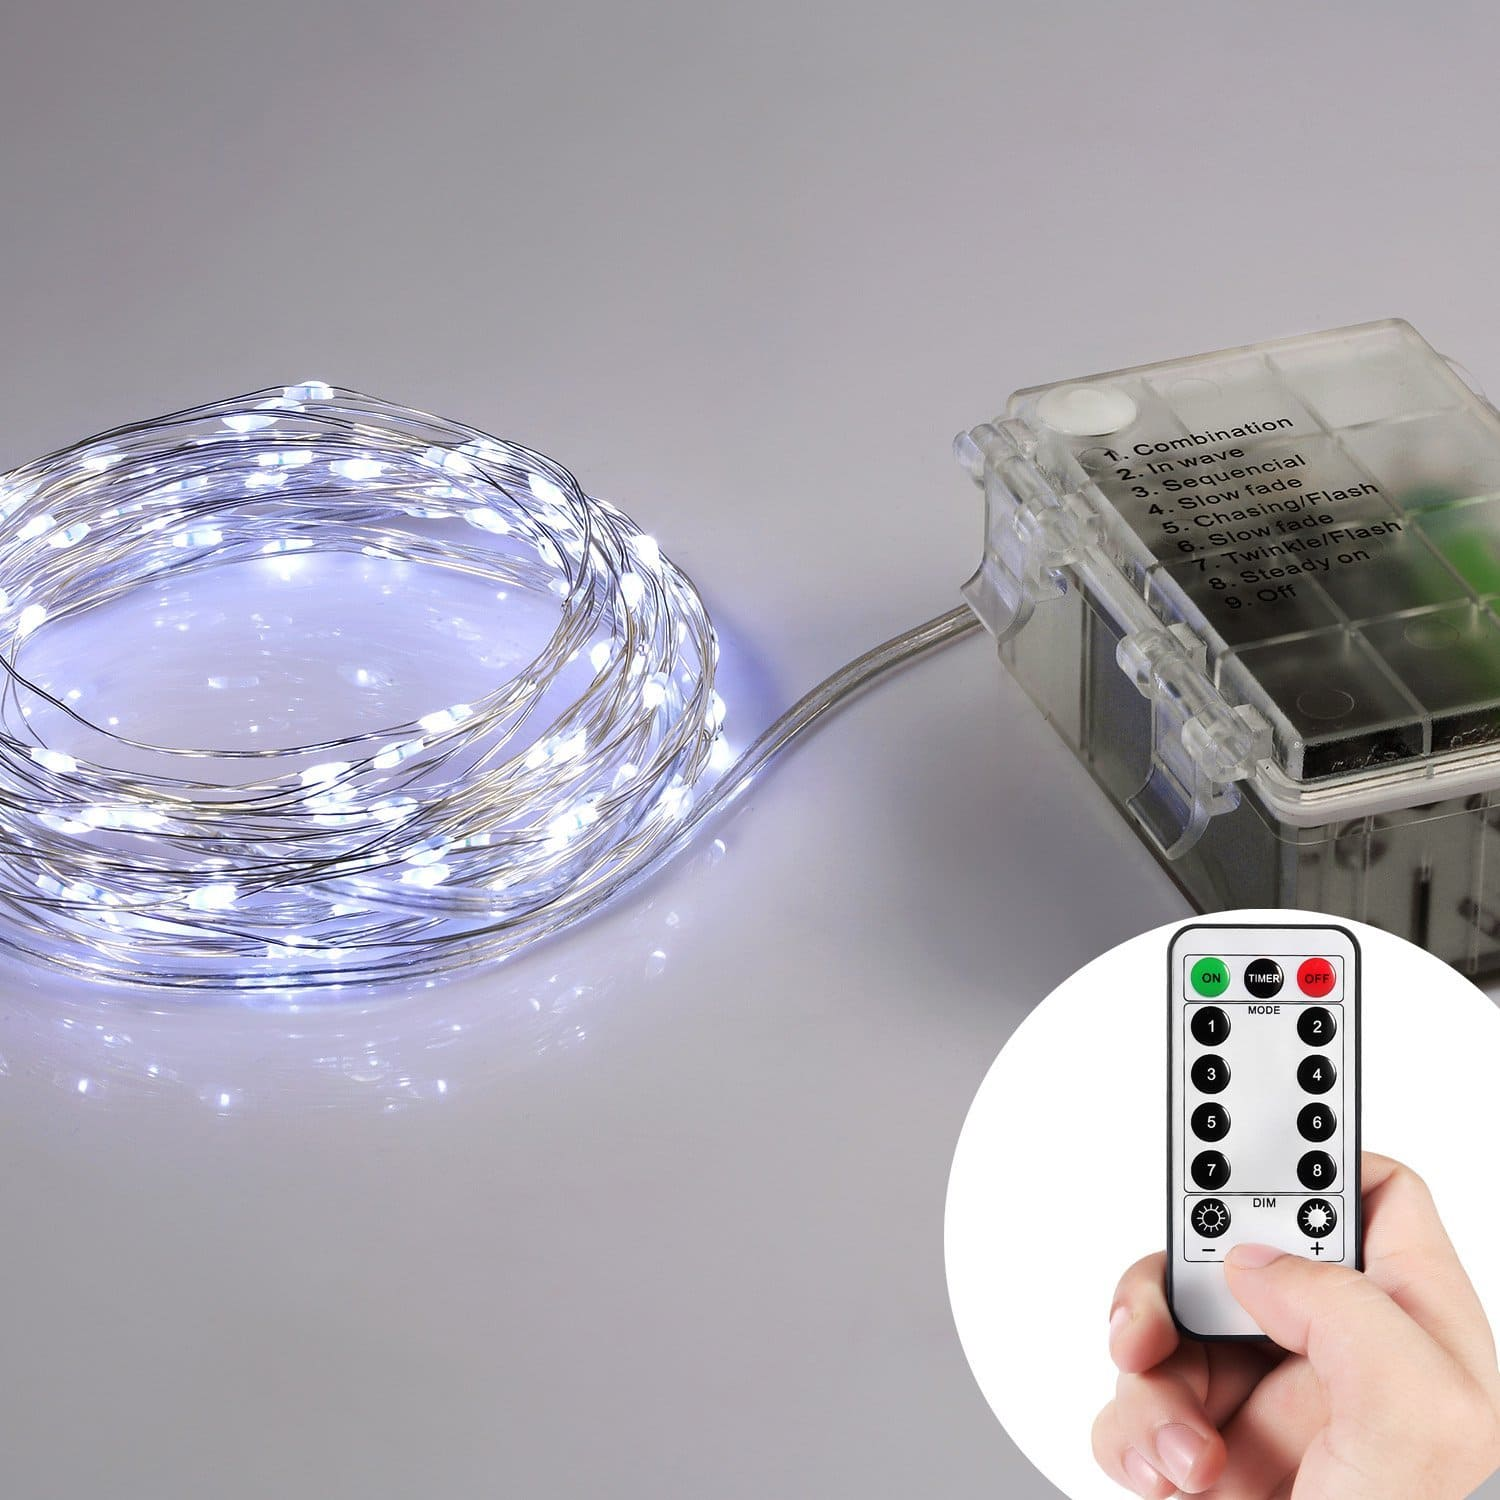 Homestarry Battery Operated Micro LED String Lights, 33 Feet with Wireless Remote for $14.95 + Free Shipping w/Prime